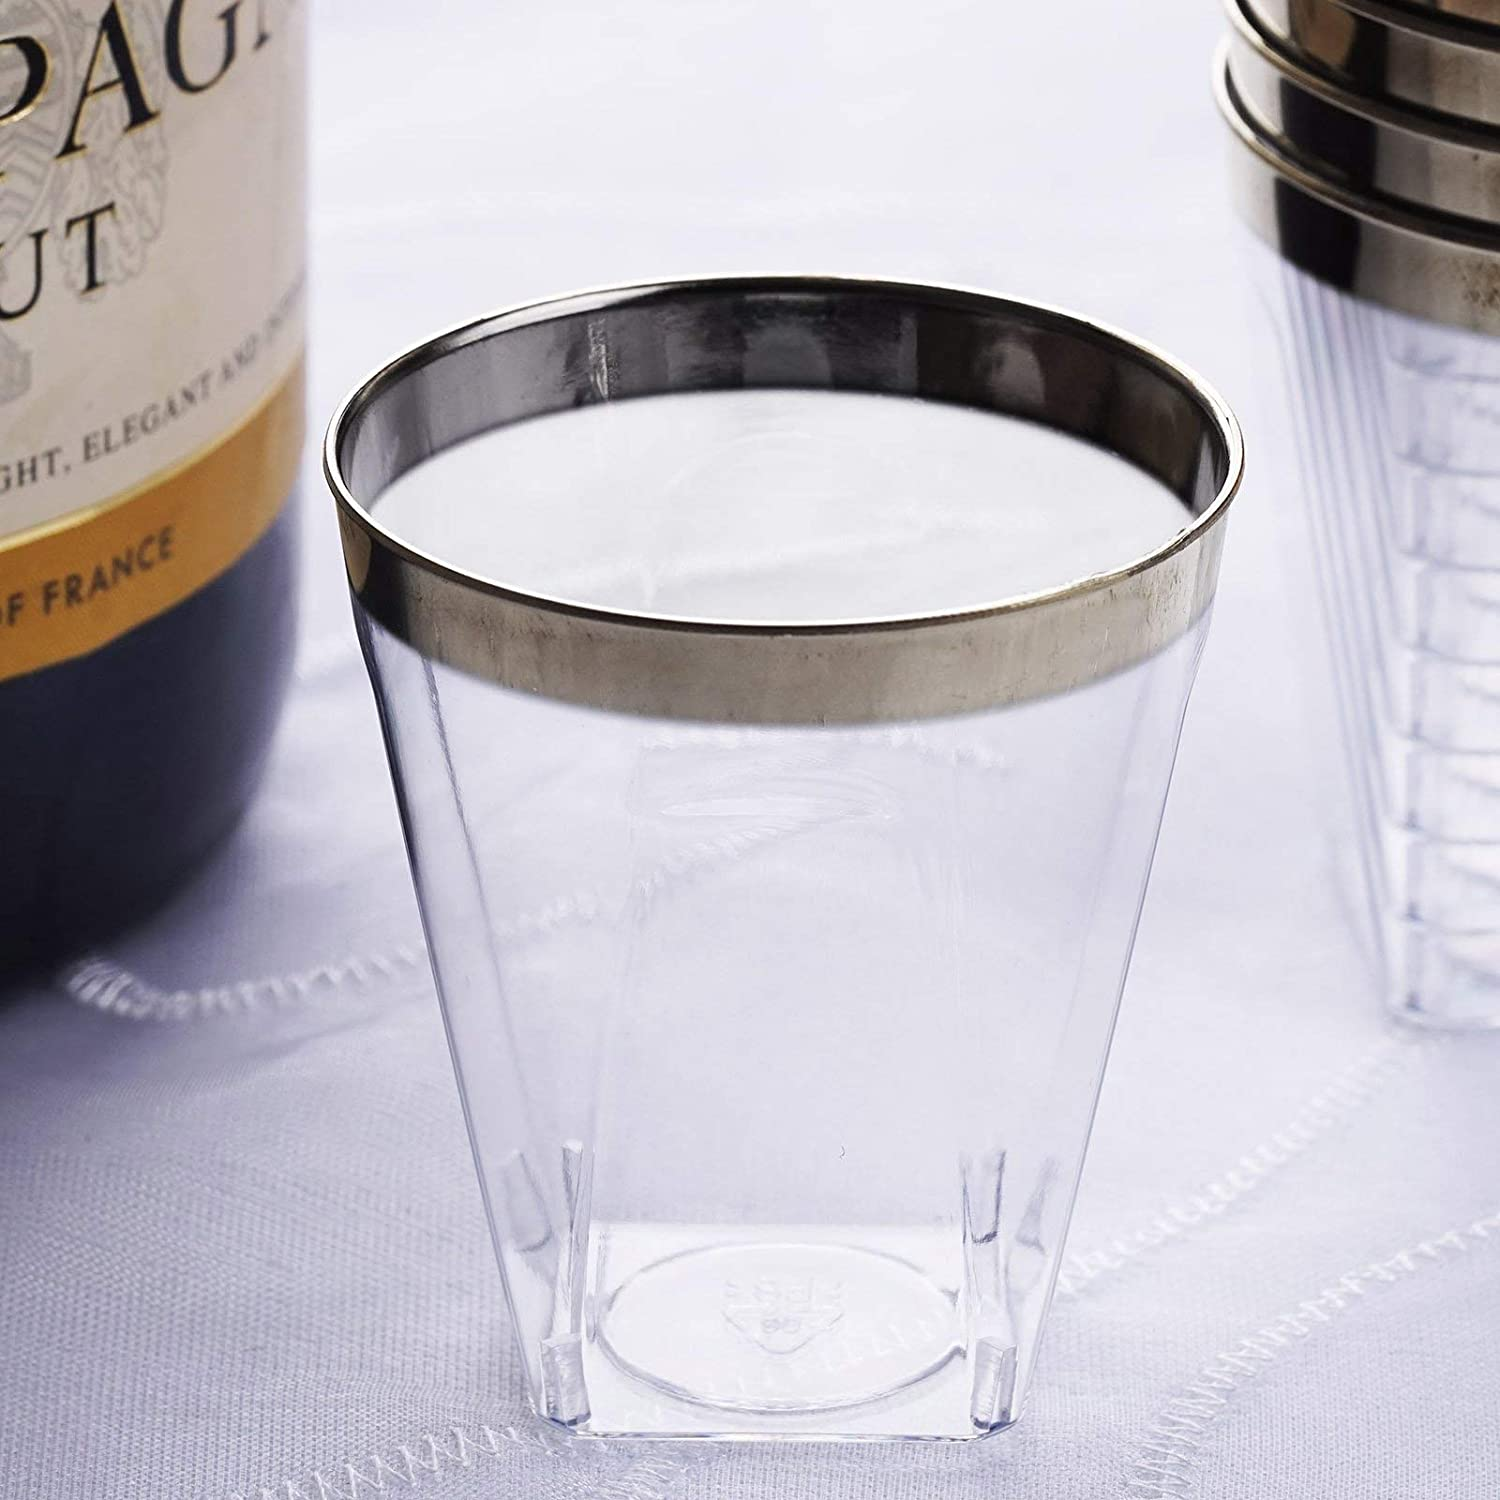 Weddings Venue Shop Plastic Sale Special Price Shot Glasses NEW before selling with oz 2 Clear - Sil